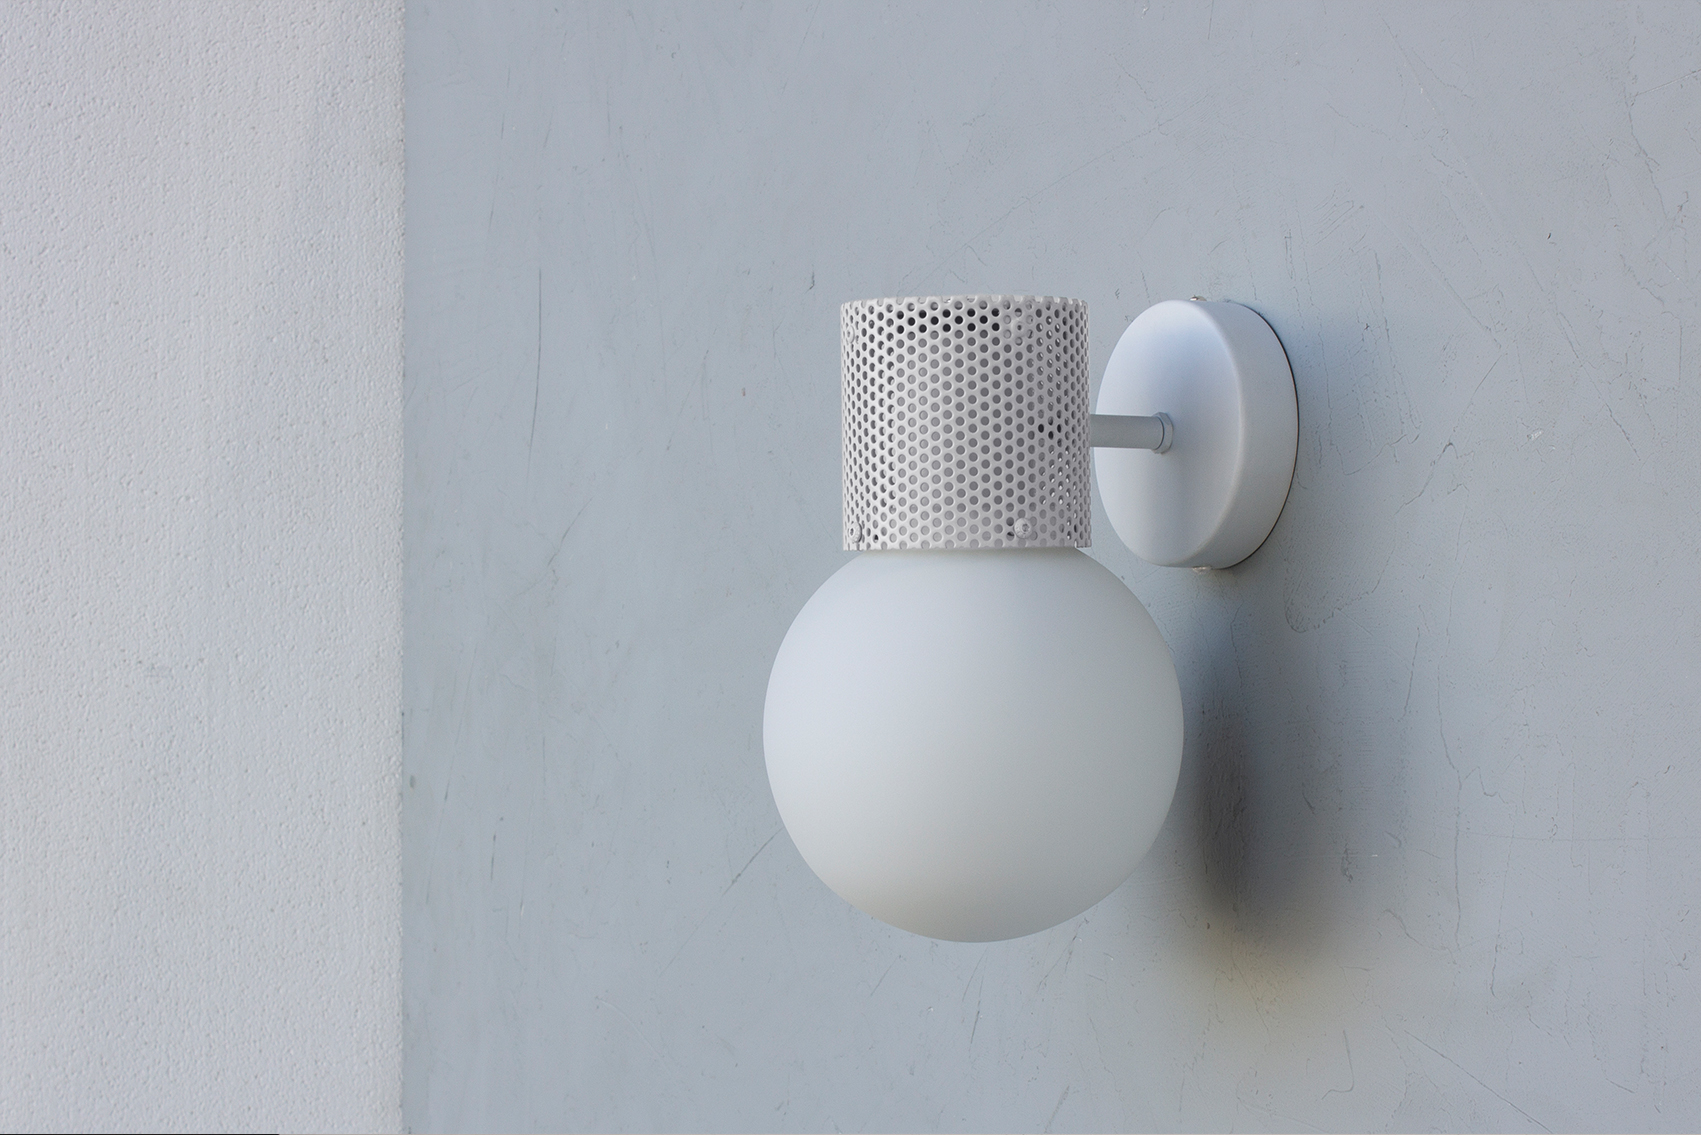 Perf wall sconce in off white